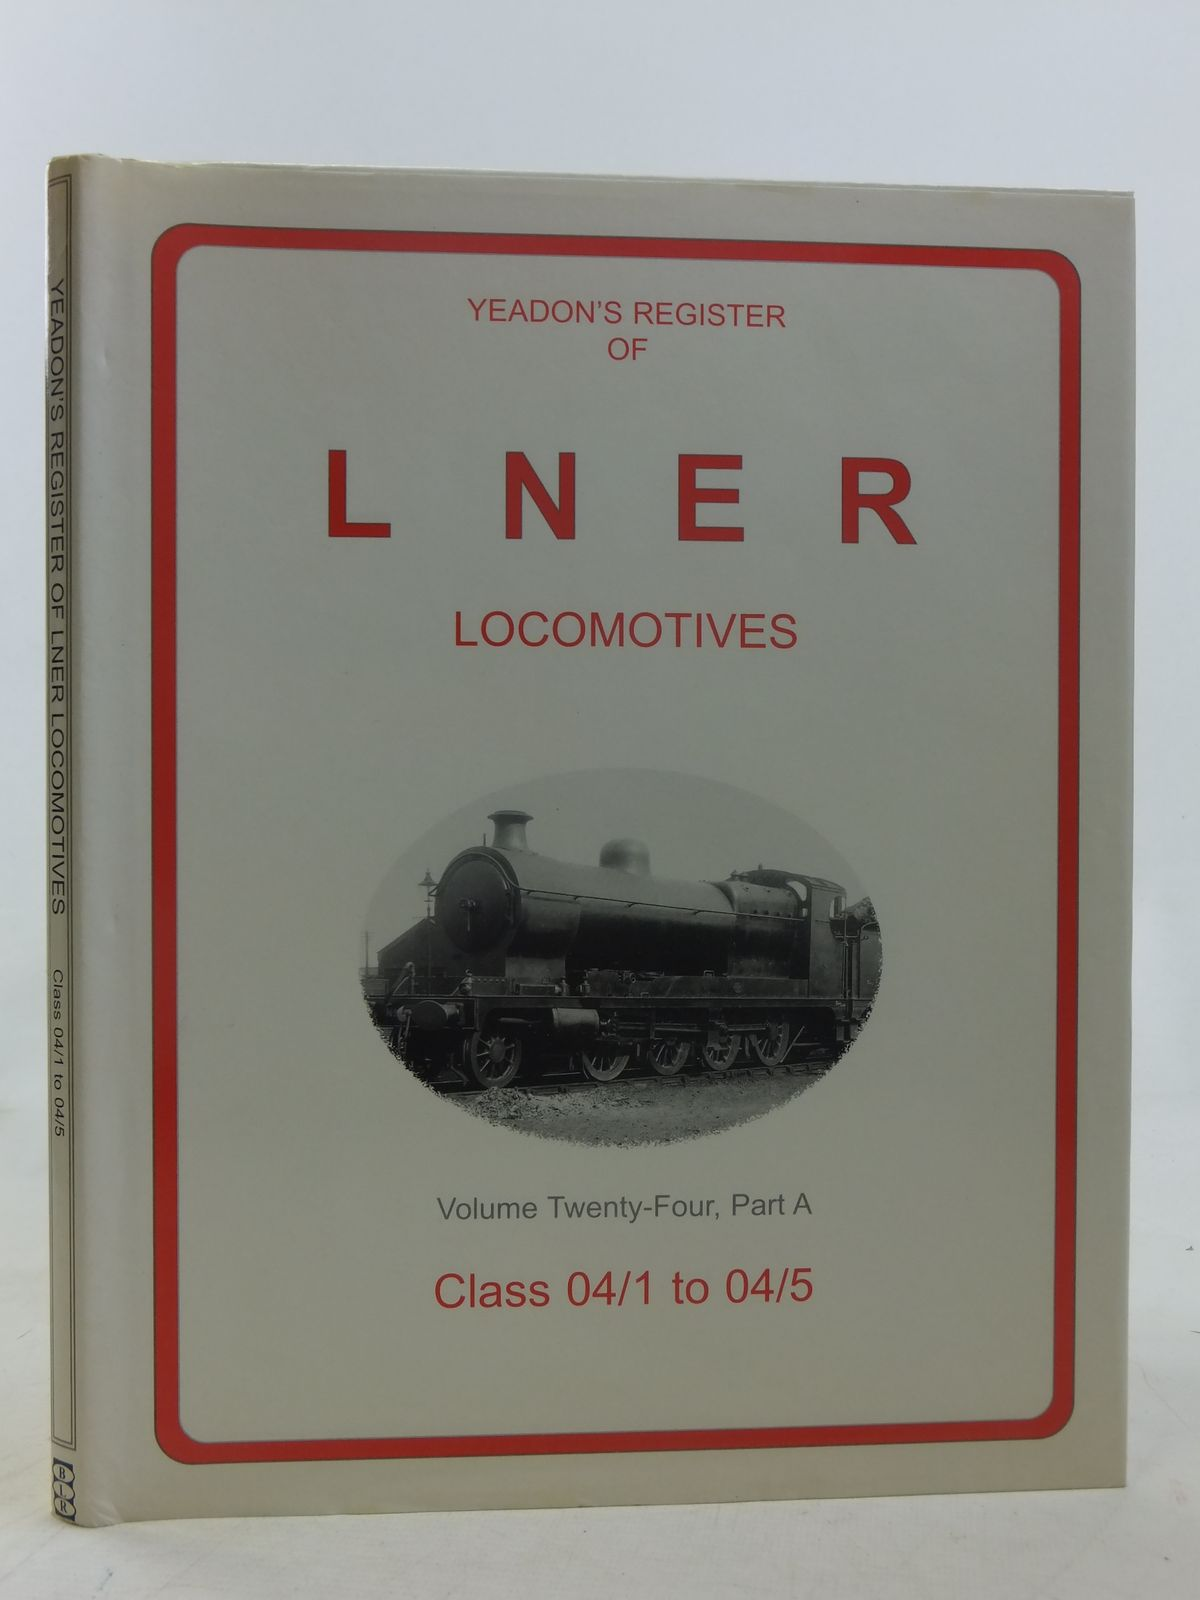 Photo of YEADON'S REGISTER OF LNER LOCOMOTIVES VOLUME TWENTY-FOUR, PART A published by Booklaw Railbus, Challenger Publications (STOCK CODE: 1606848)  for sale by Stella & Rose's Books